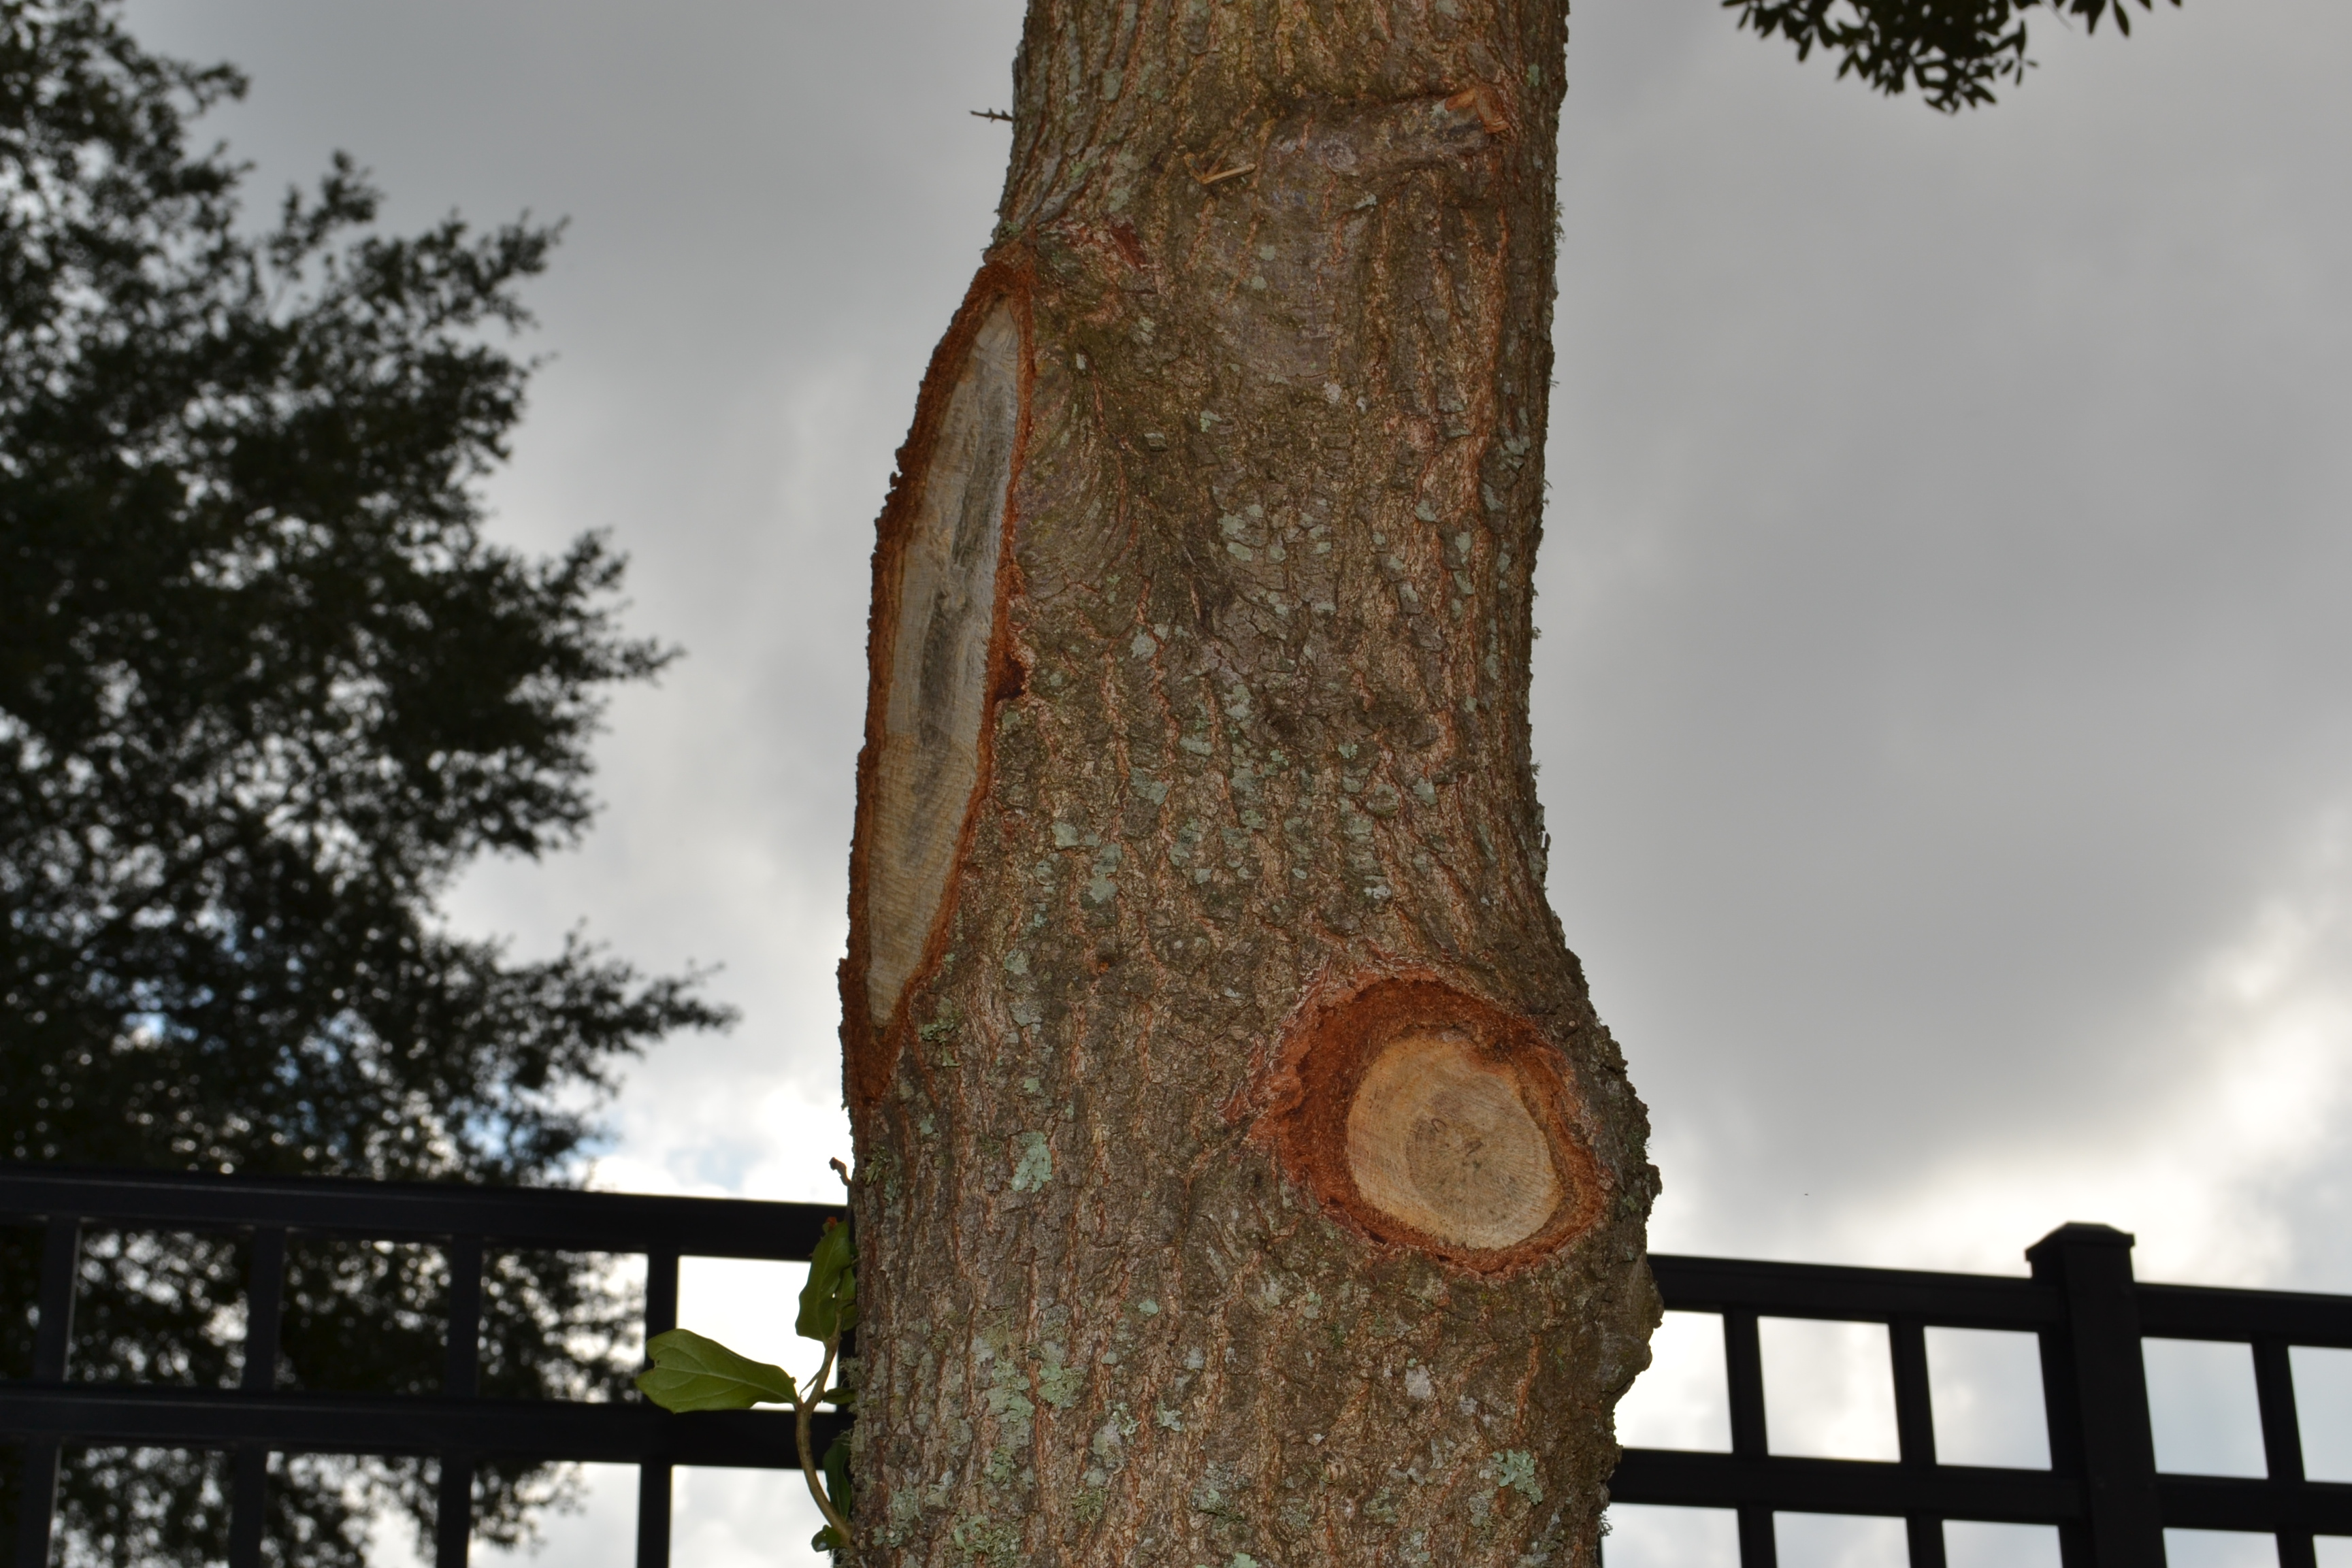 Tree borers amp bark beetles arborx tree health care - Flush Cuts Are Damaging To Trees And Can Create A Future Hazard In Your Landscape Photo By Beth Bolles Uf Ifas Extension Escambia County